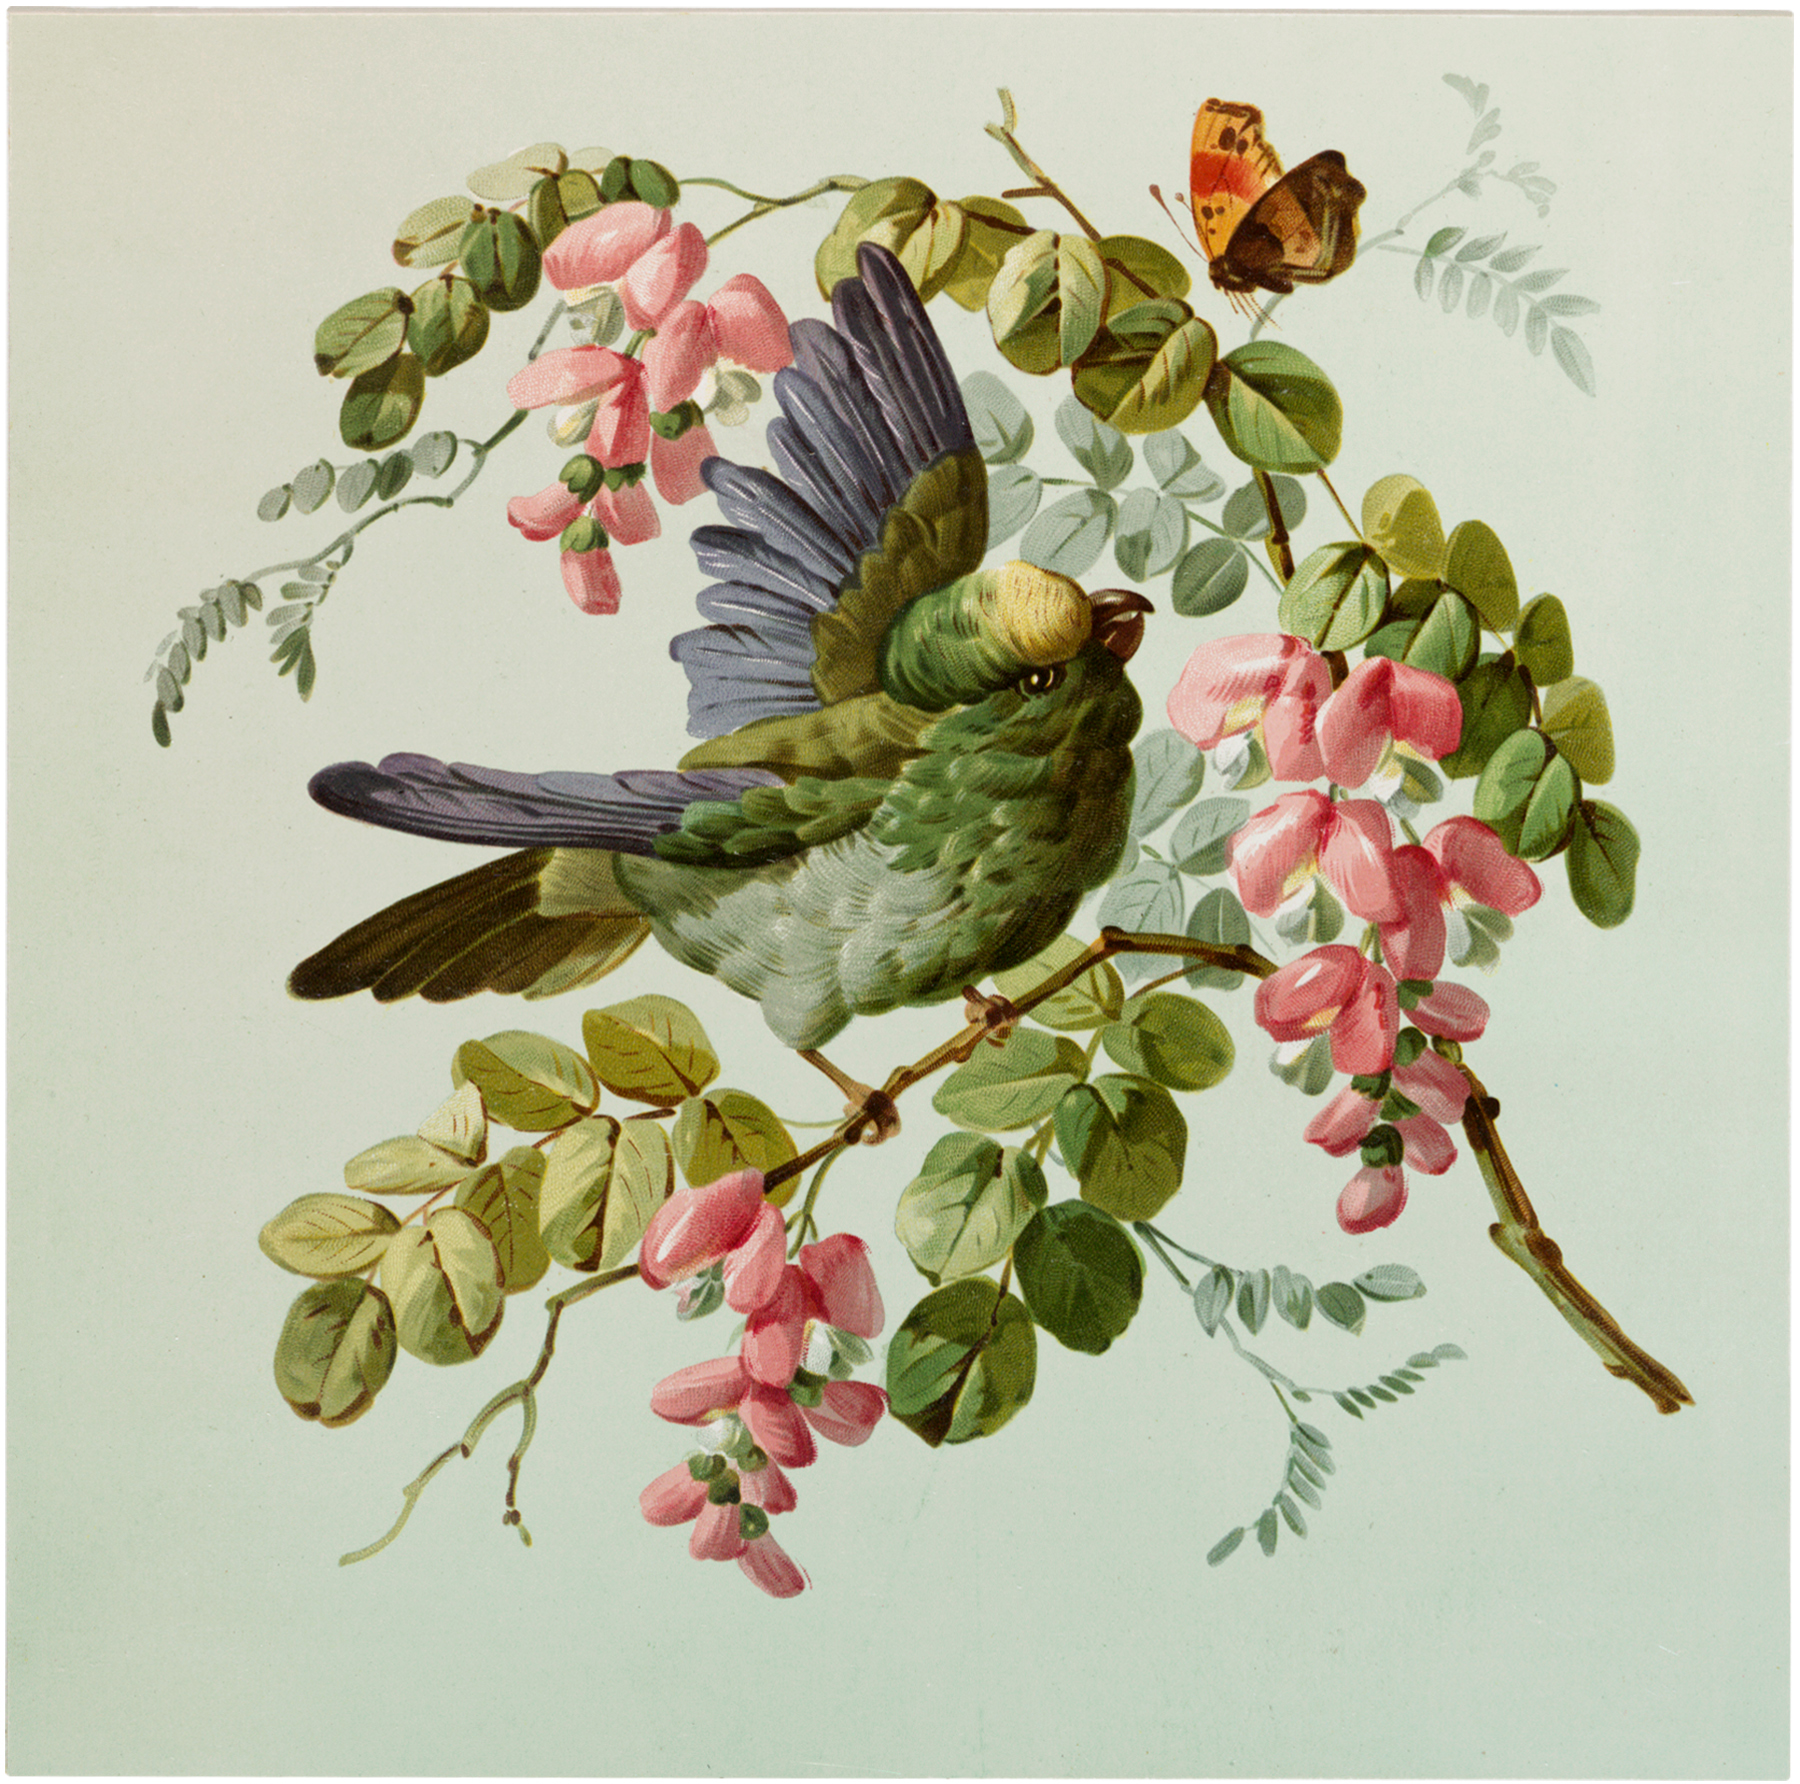 Vintage Fancy Bird with Flowers Image